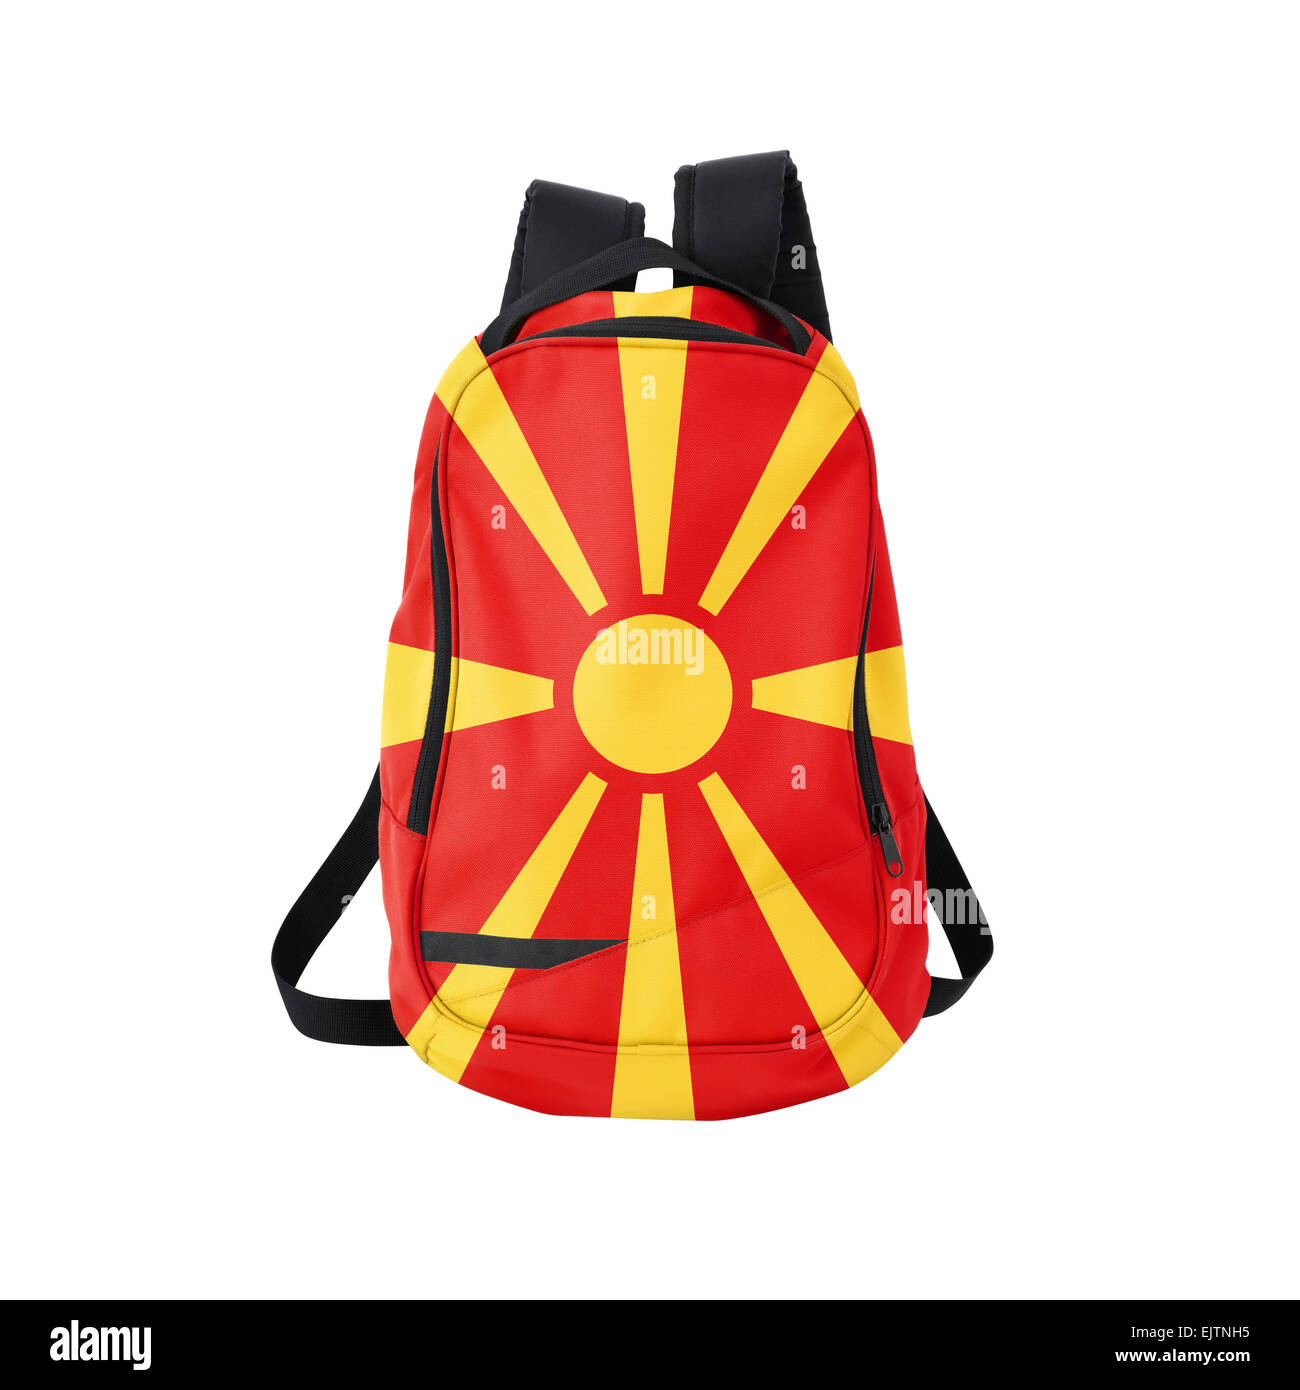 Macedonian flag backpack isolated on white background. Back to school concept. Education and study abroad. Travel - Stock Image